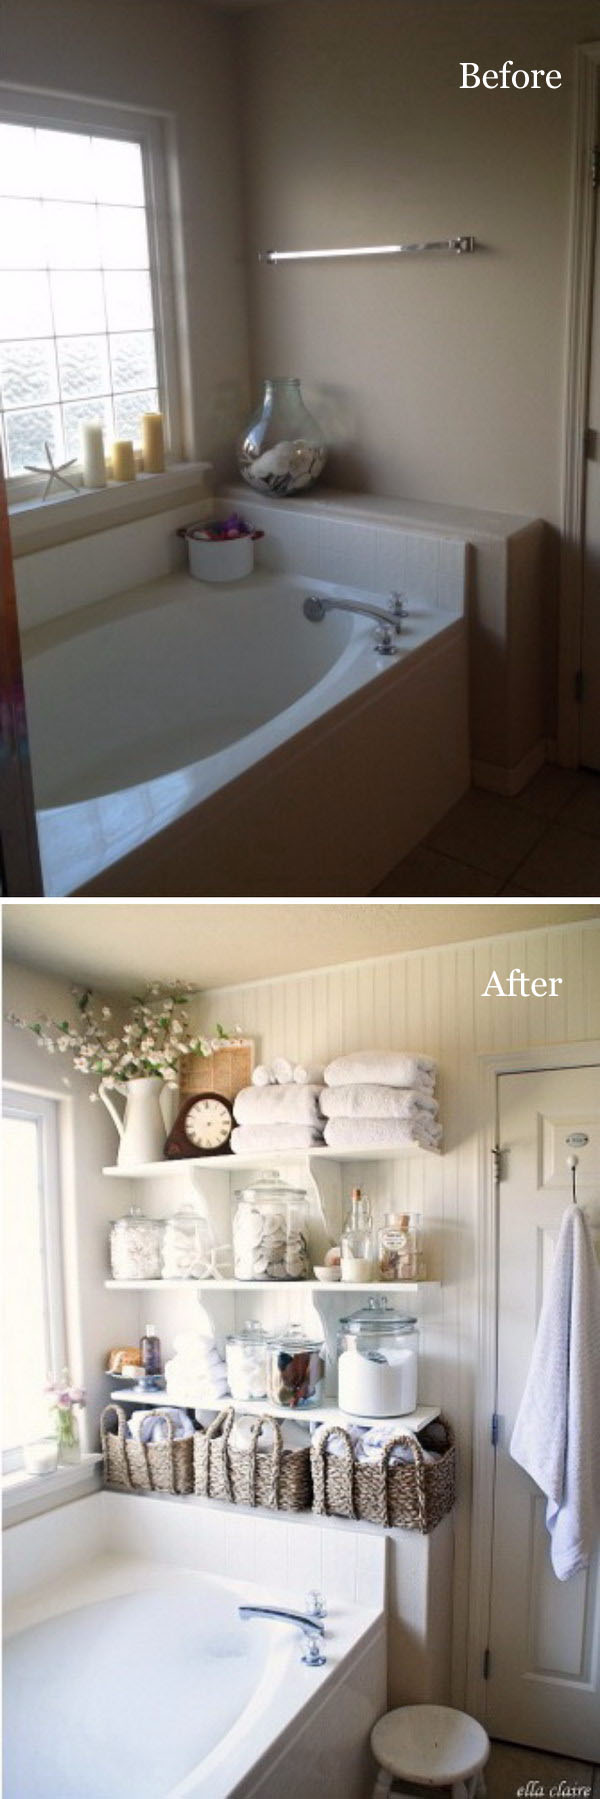 Take Advantage of Empty Walls with DIY Bathroom Linen Shelves.